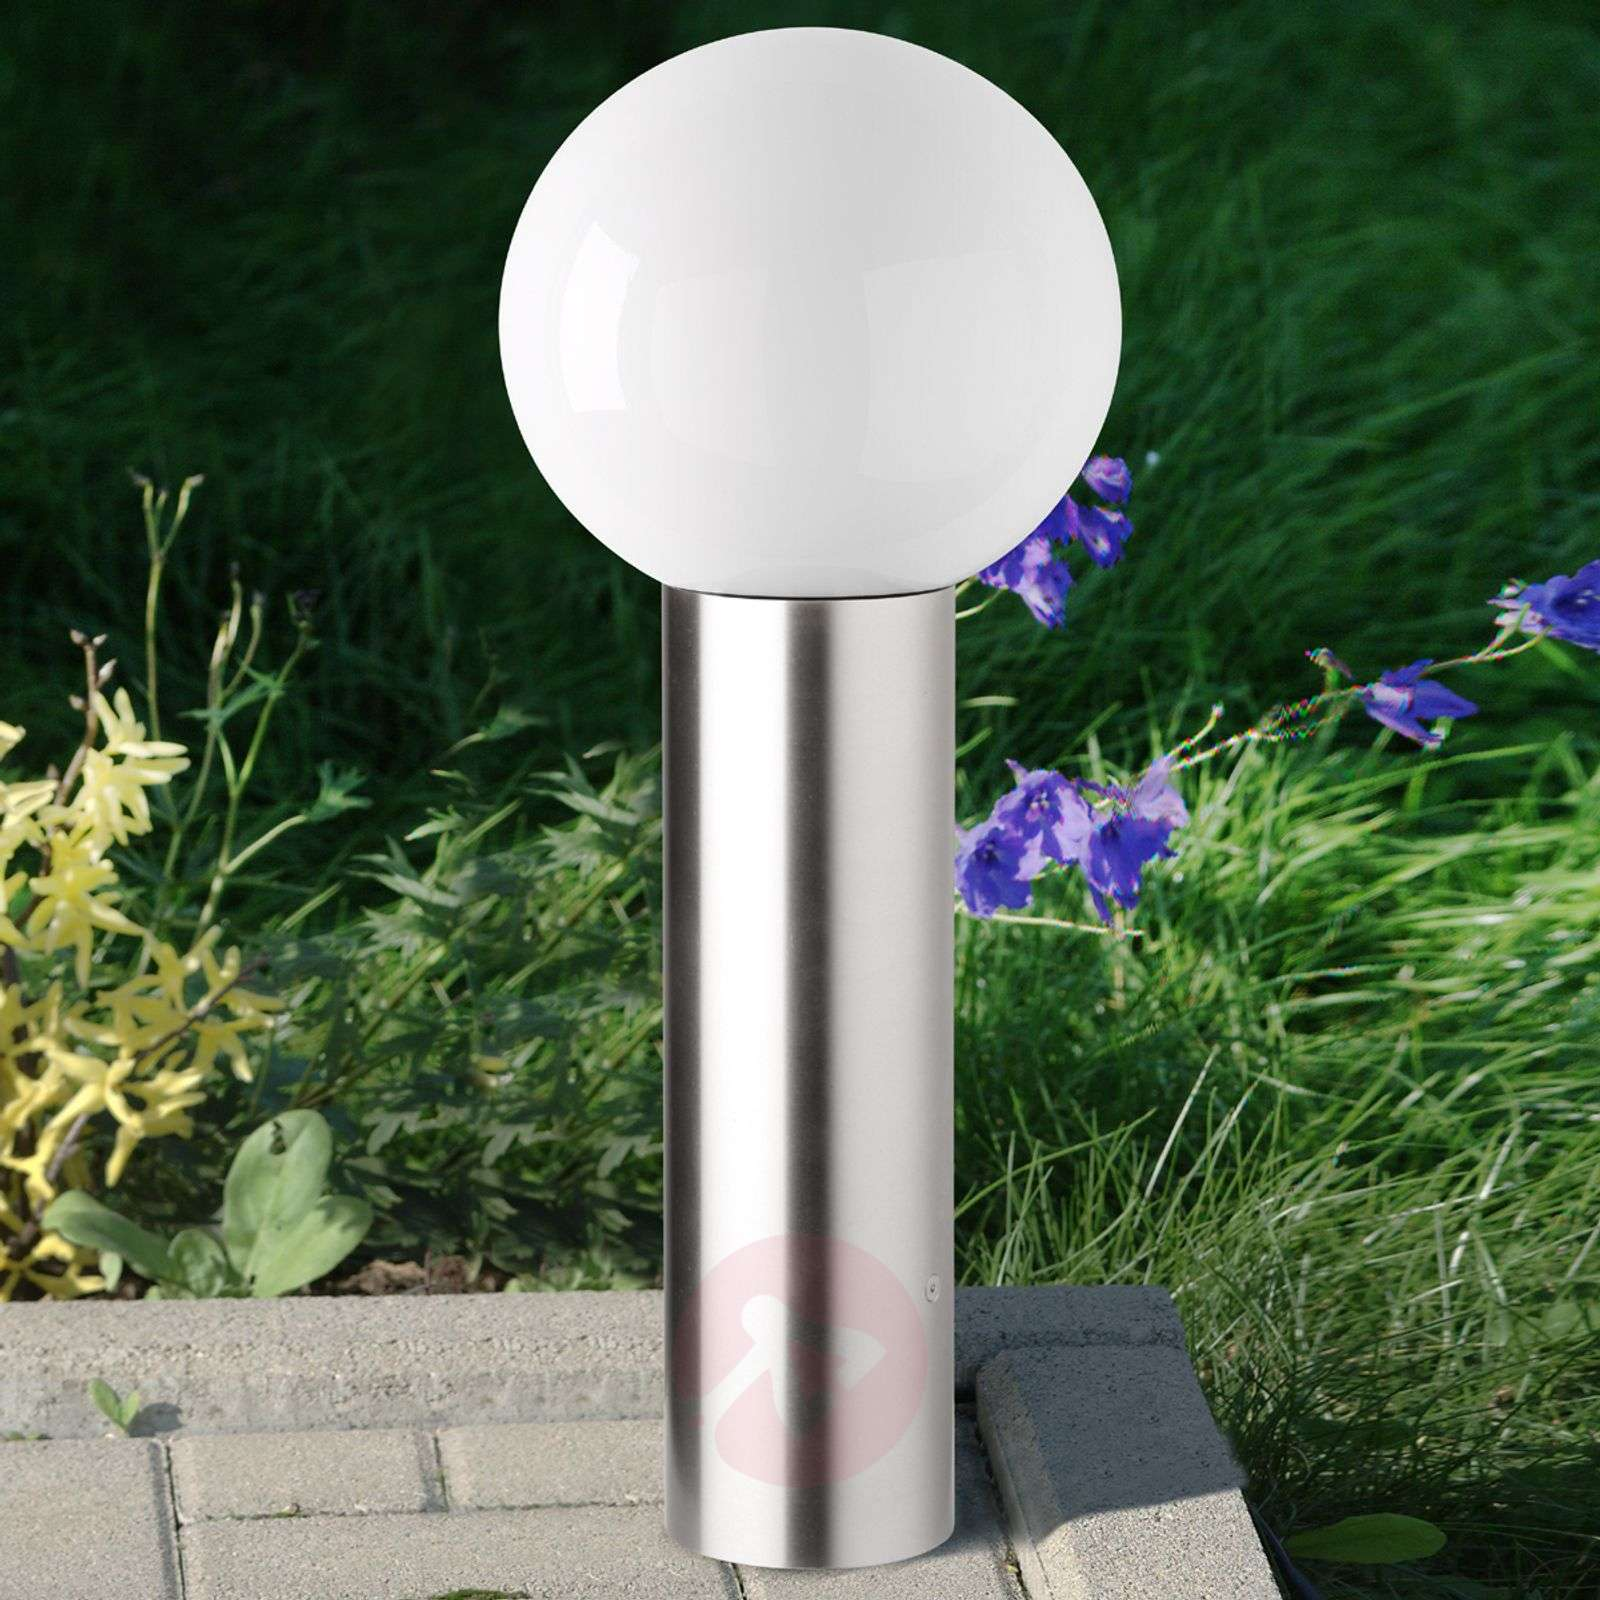 Kekoa decorative stainless steel pillar light-2011202-01